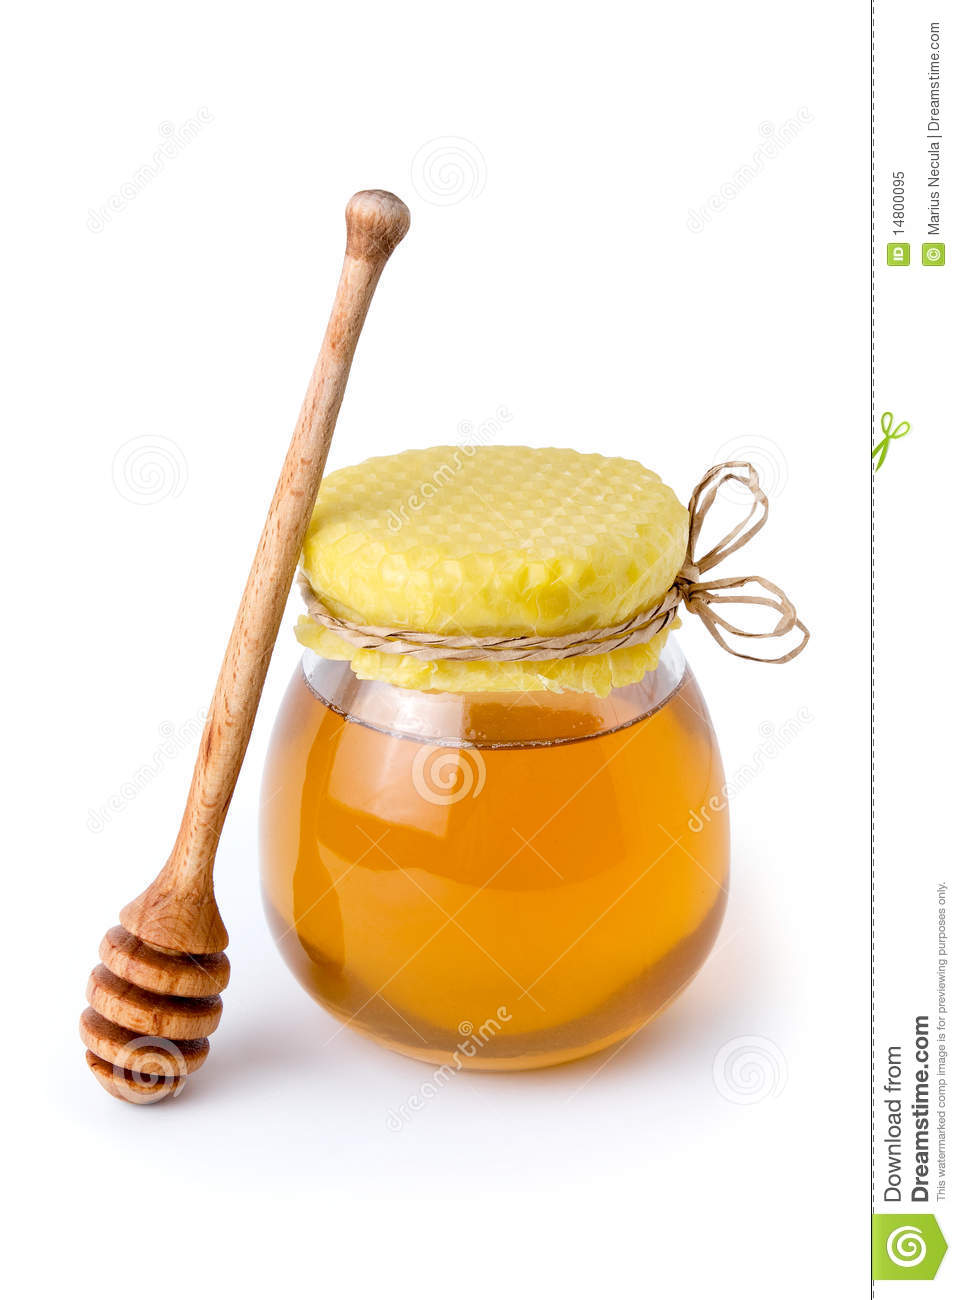 honey jar royalty free stock photo image 14800095 honeycomb clip art cubbies honeycomb clip art png